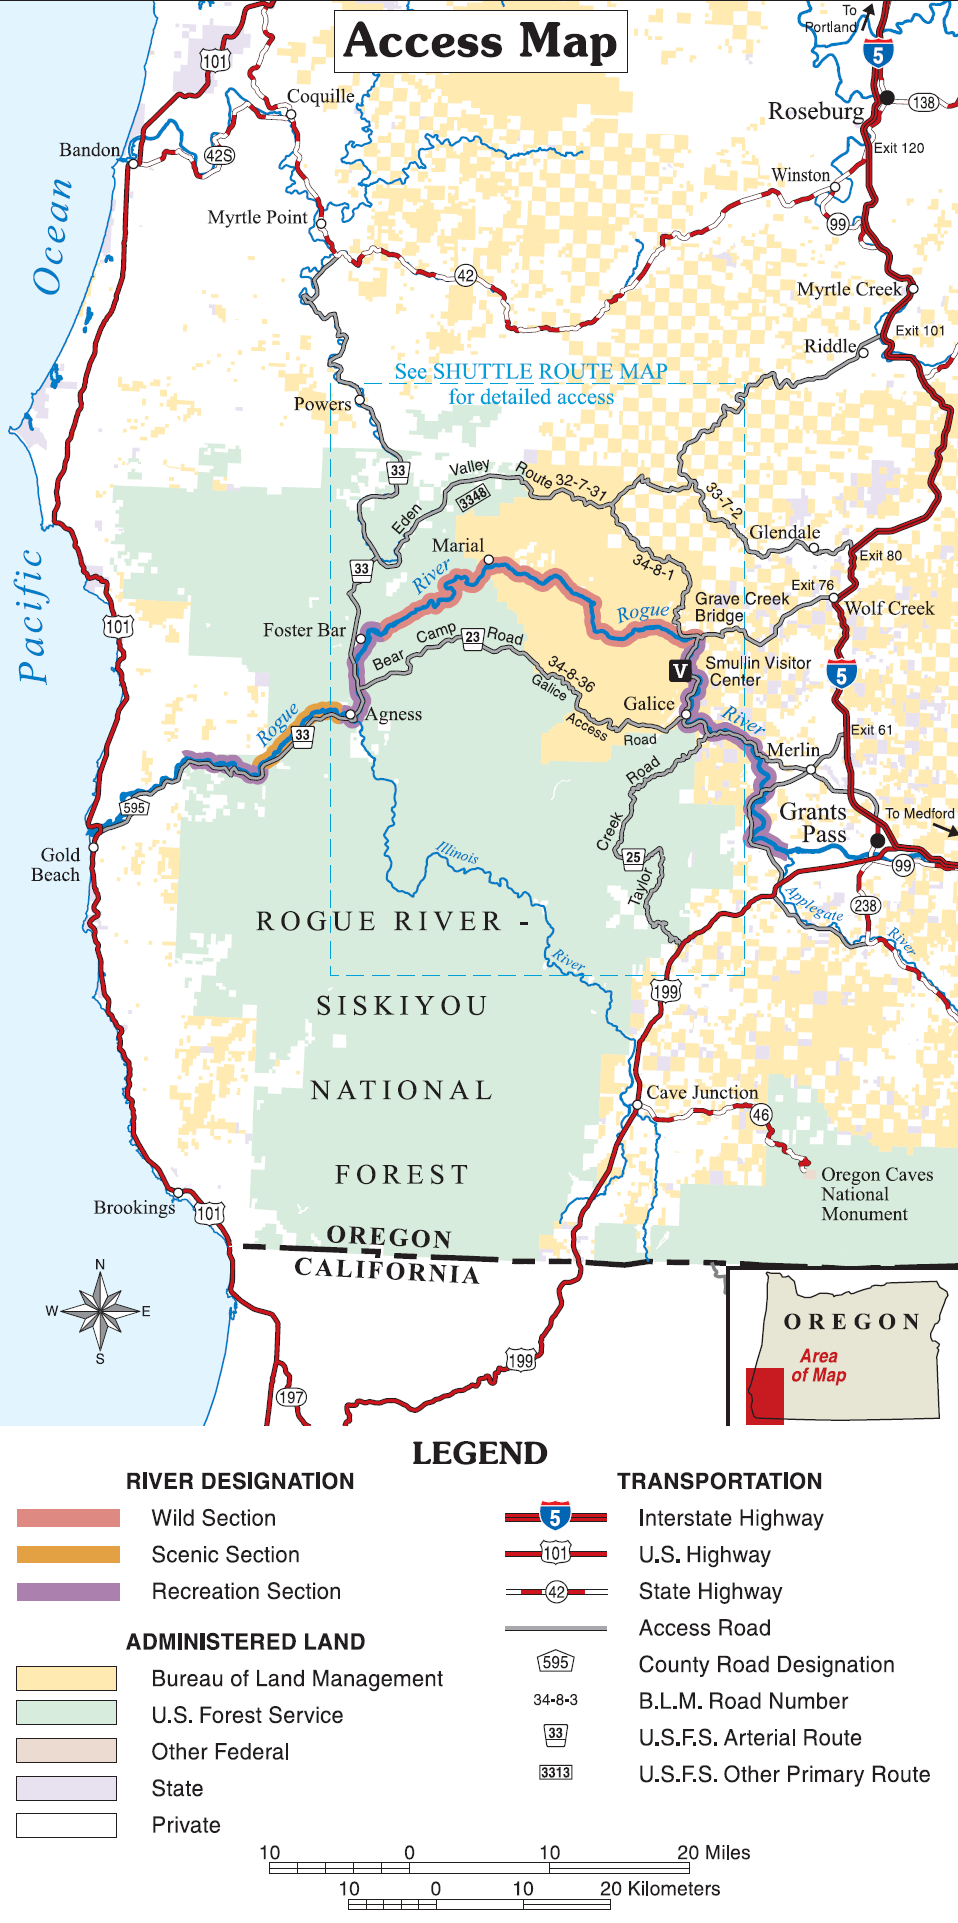 By Bureaa of Land Management and US Forest Service (w:Image:Rogue river access map.png), via Wikimedia Commons